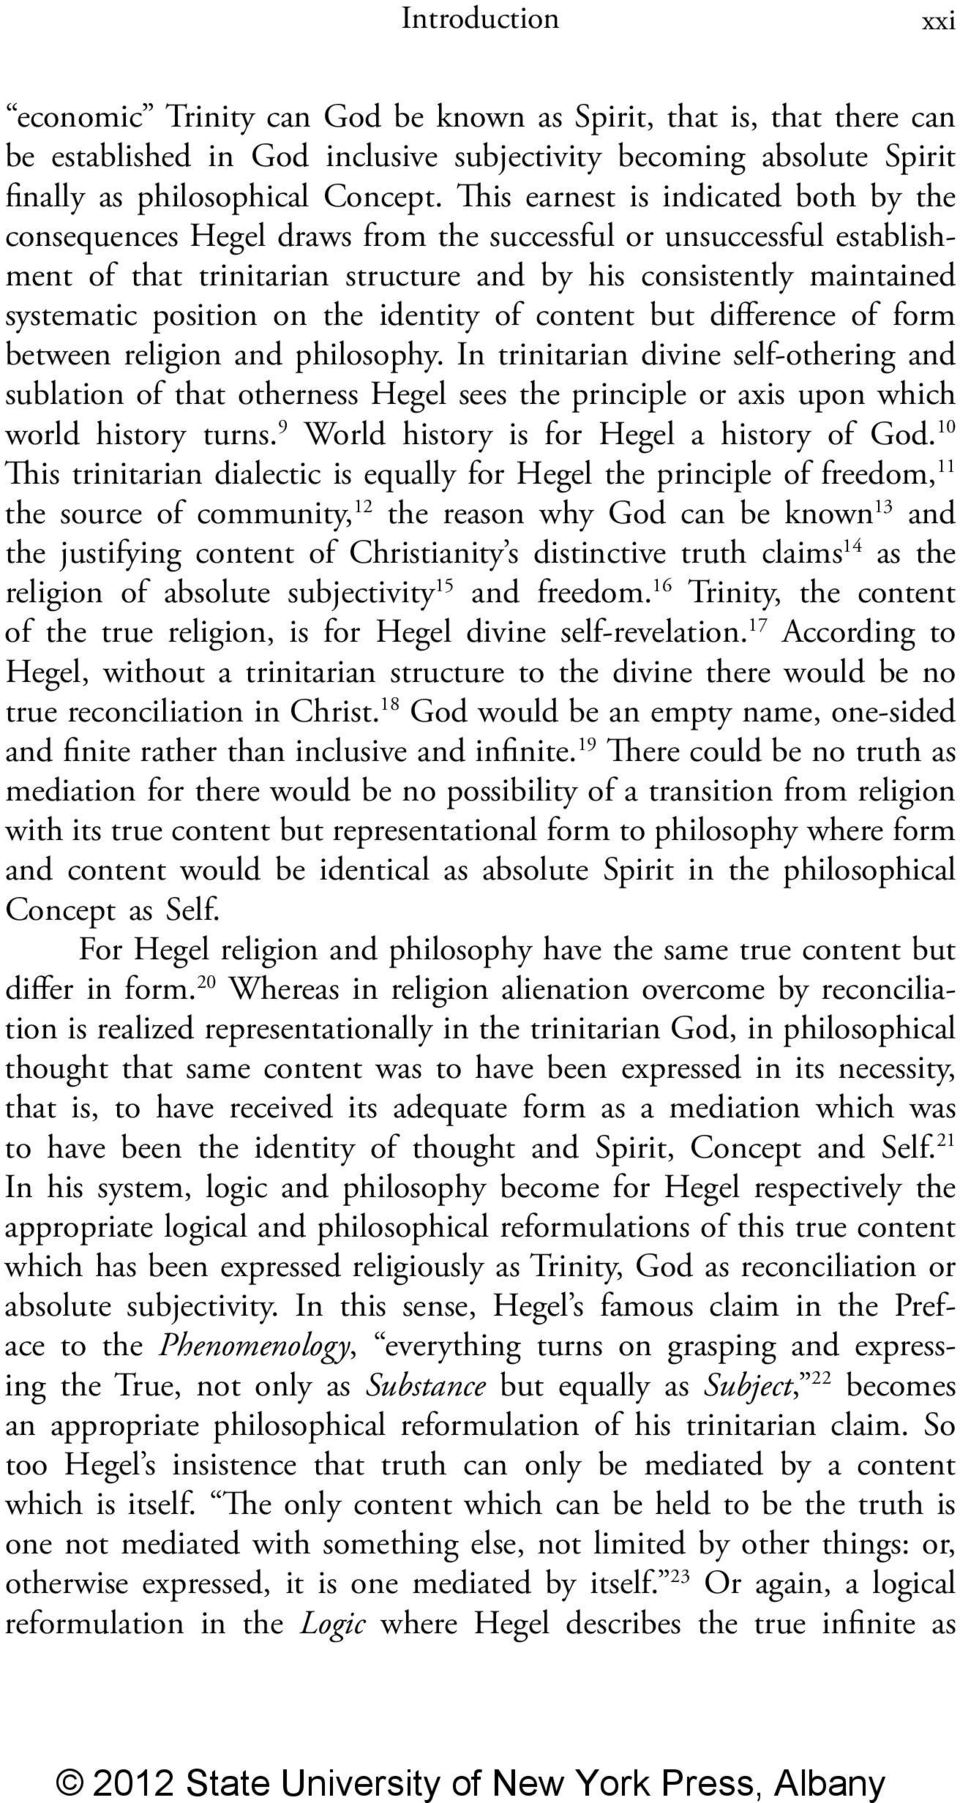 on the identity of content but difference of form between religion and philosophy.